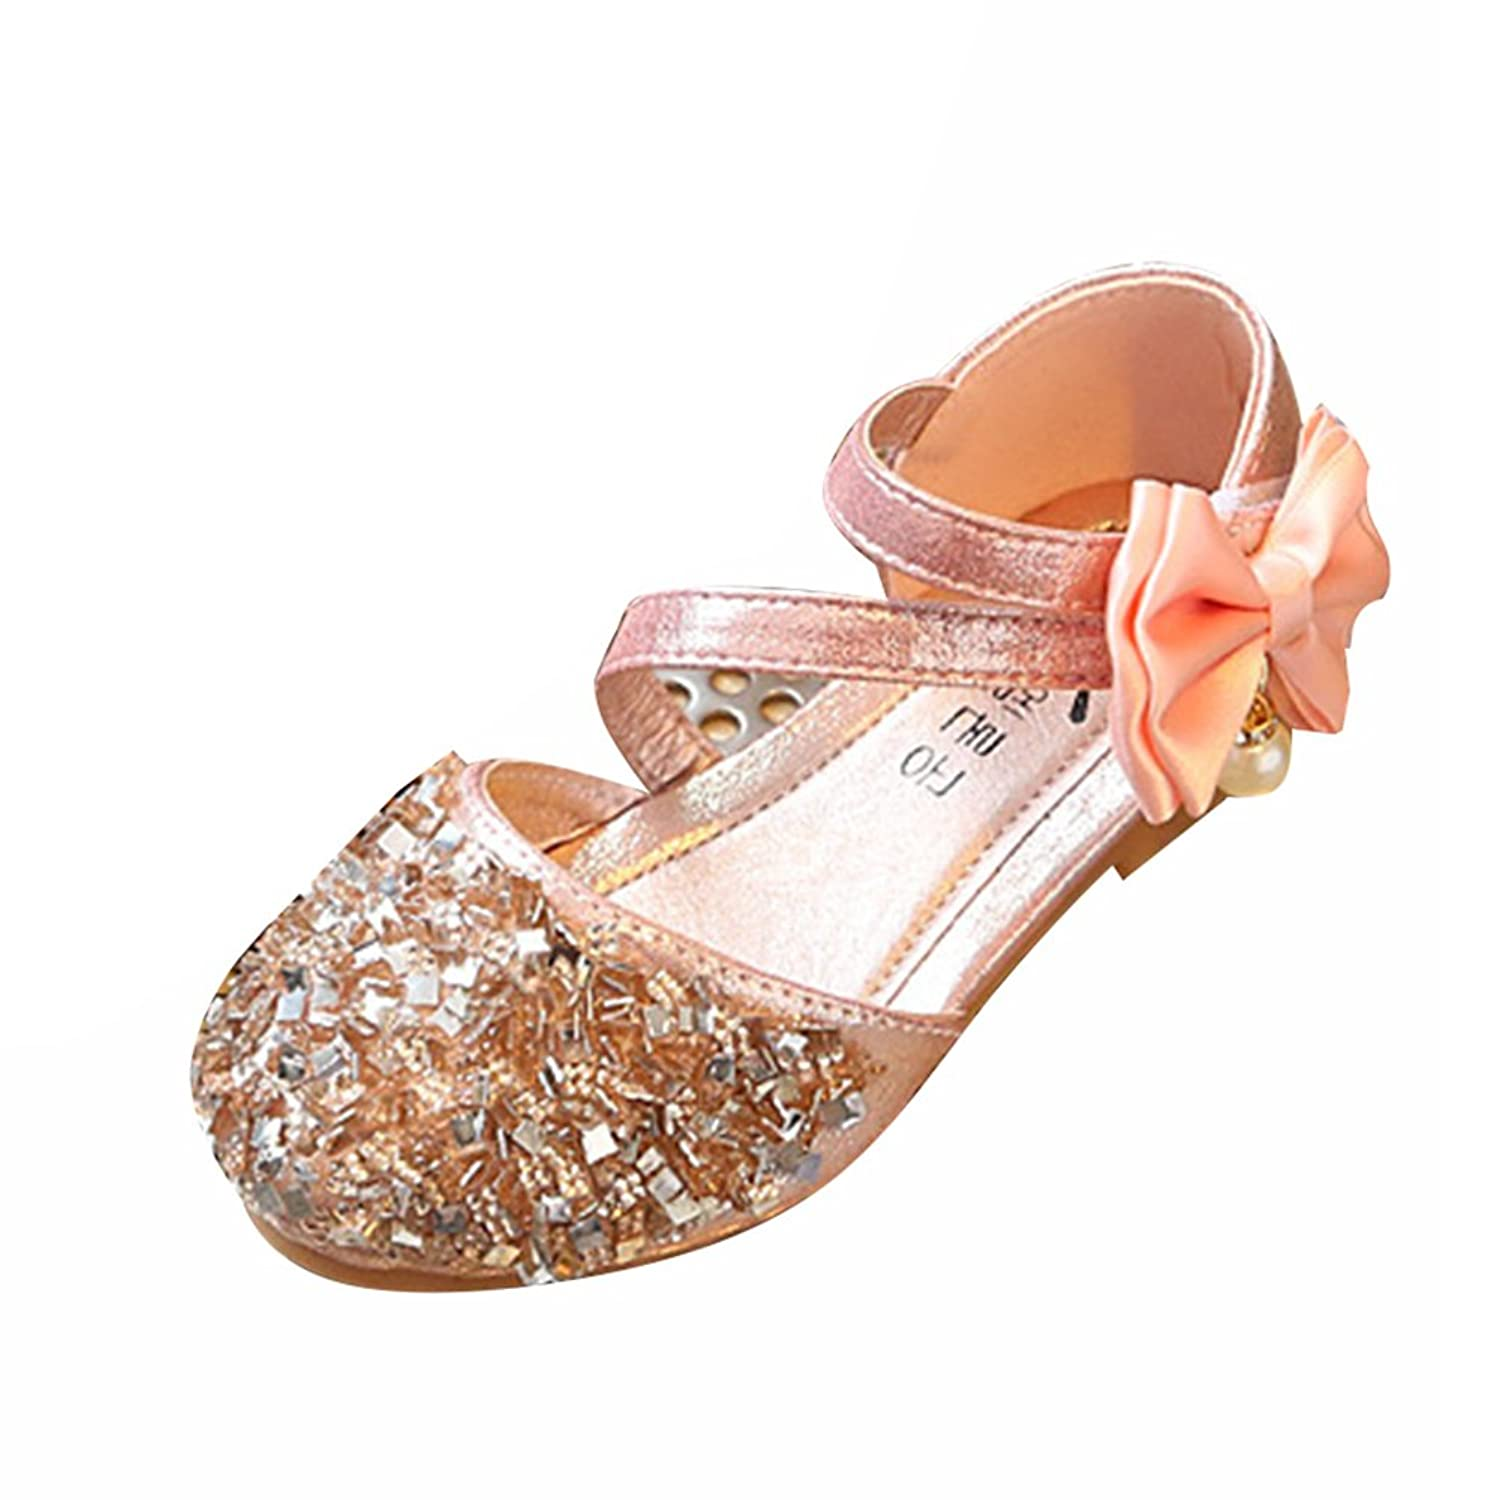 Amur Leopard Kids Girls Mary Jane Shoes Diamonds Bowknot Dance Wedding Princess Shoes(Toddler/Little Kid) Pink 8M US Toddler